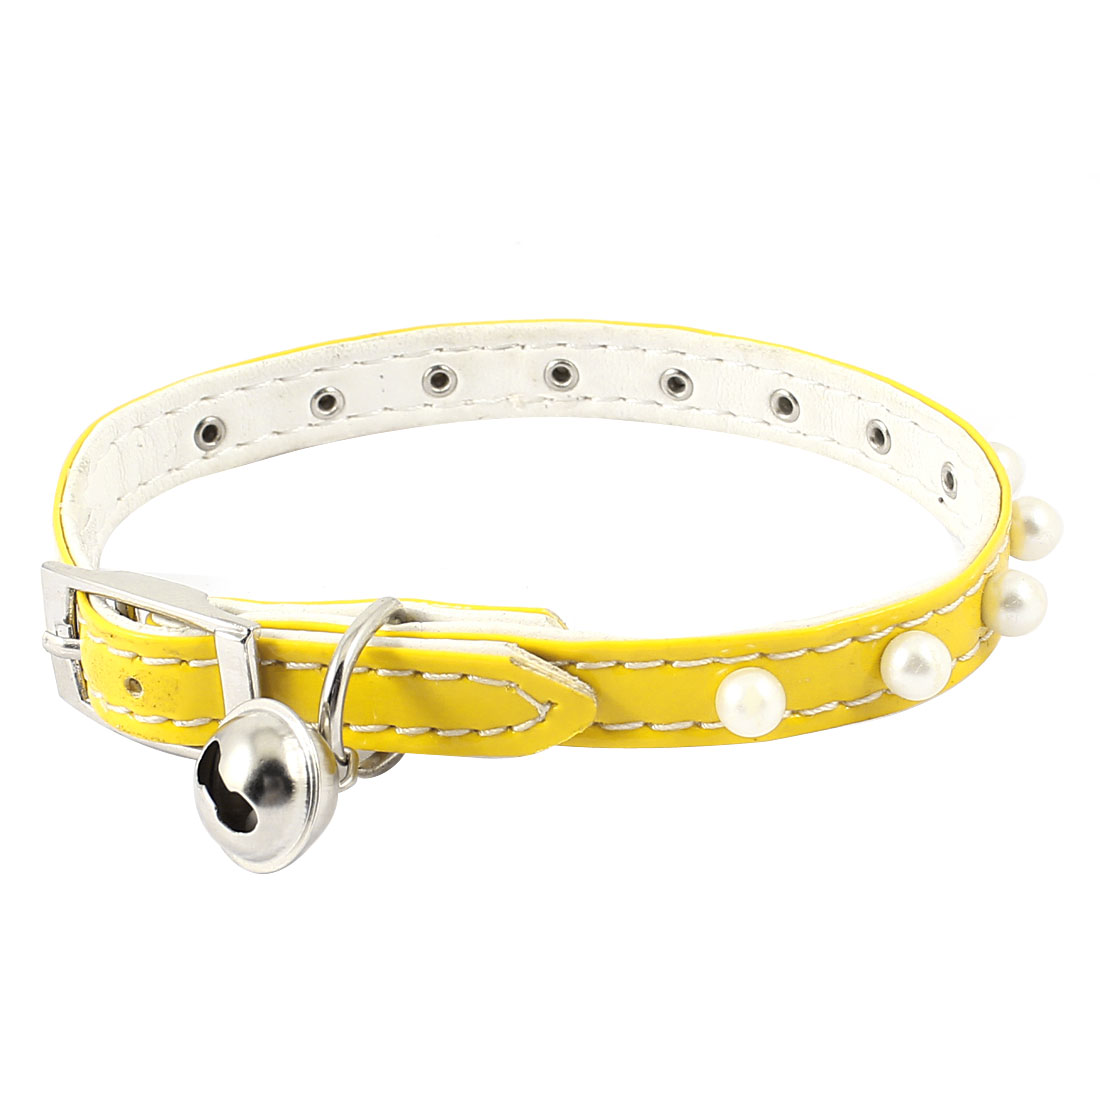 Single Prong Buckle Metal Bell Plastic Beads Detail Faux Leather Adjustable Belt Collar Yellow for Pet Cat Dog Doggy